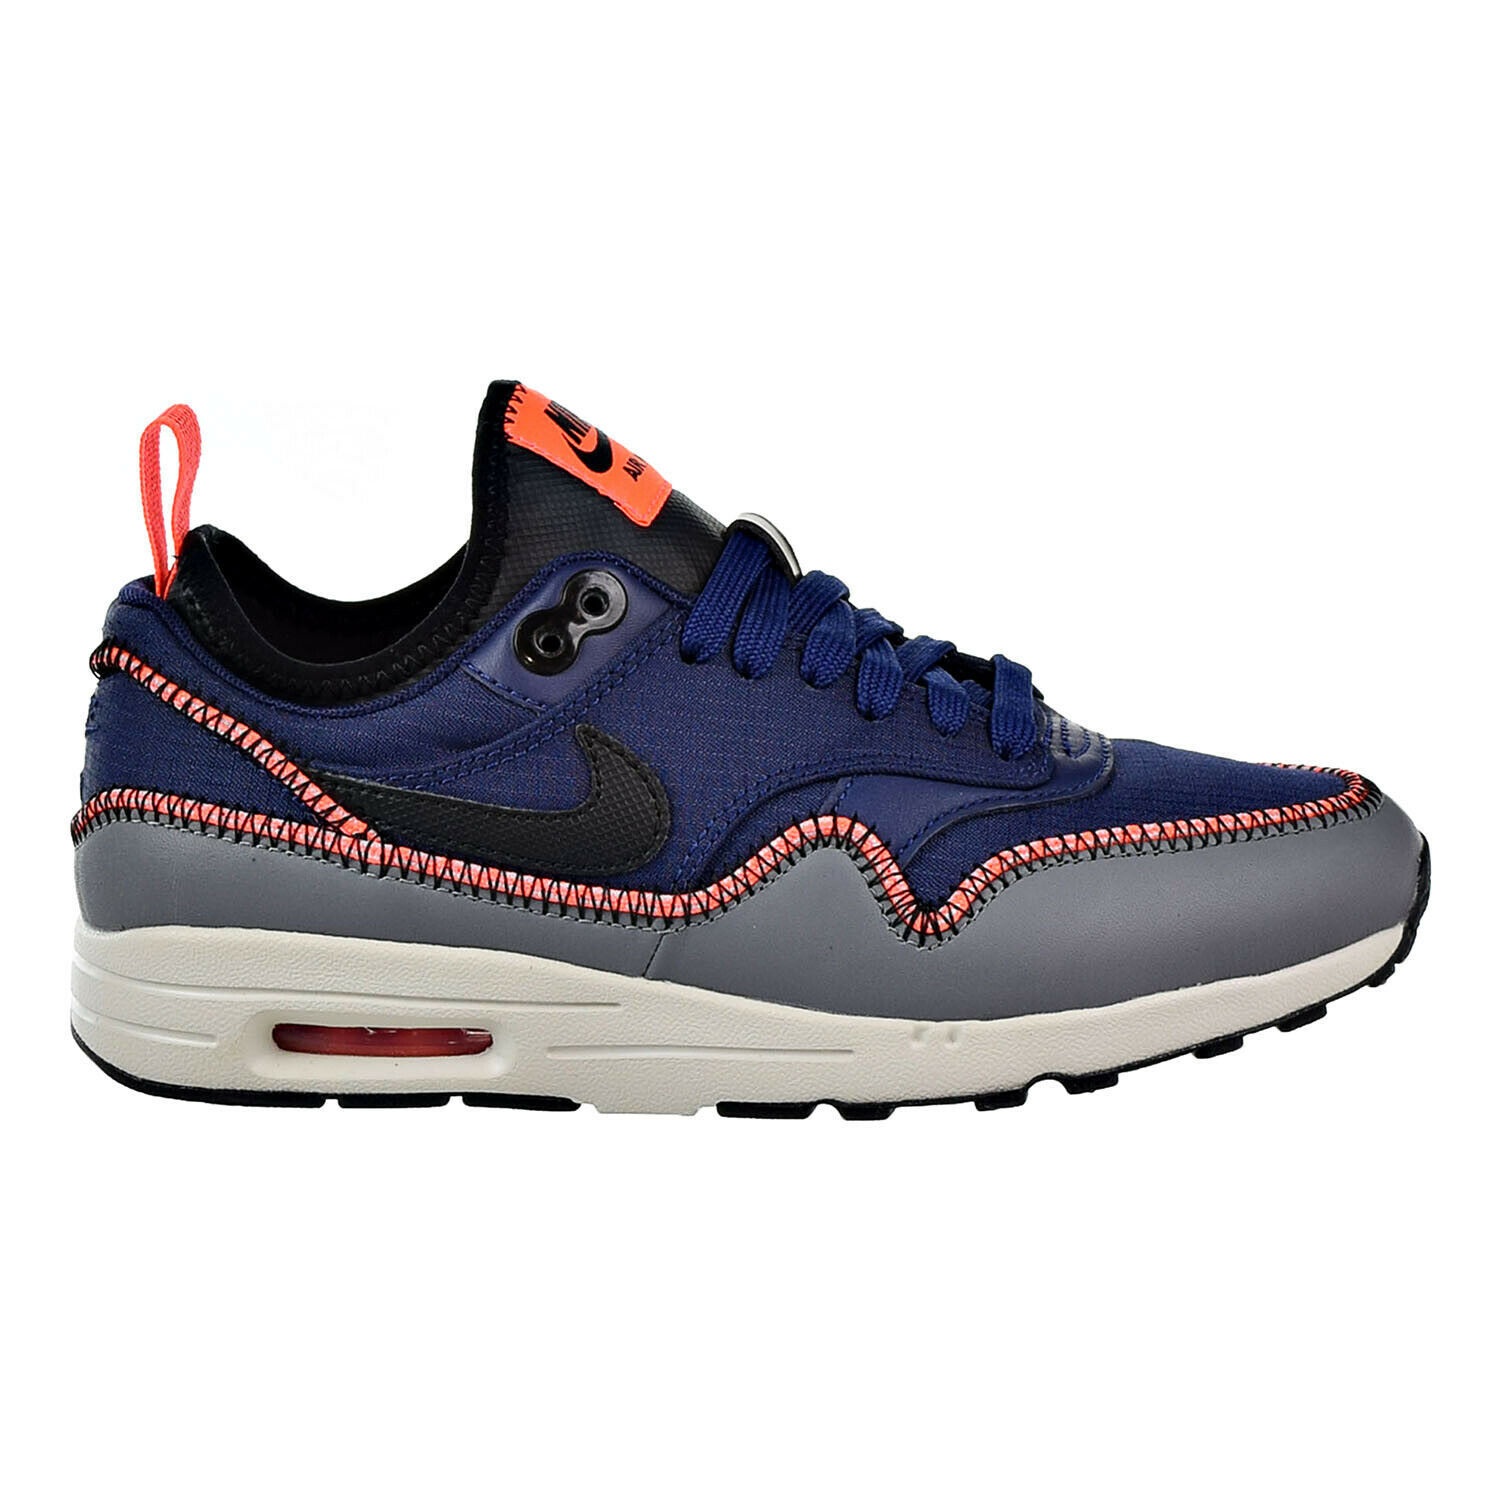 Primary image for Nike Air Max 1 Ultra 2.0 SI Women's Shoes Binary Blue-Light Bone 881103-400